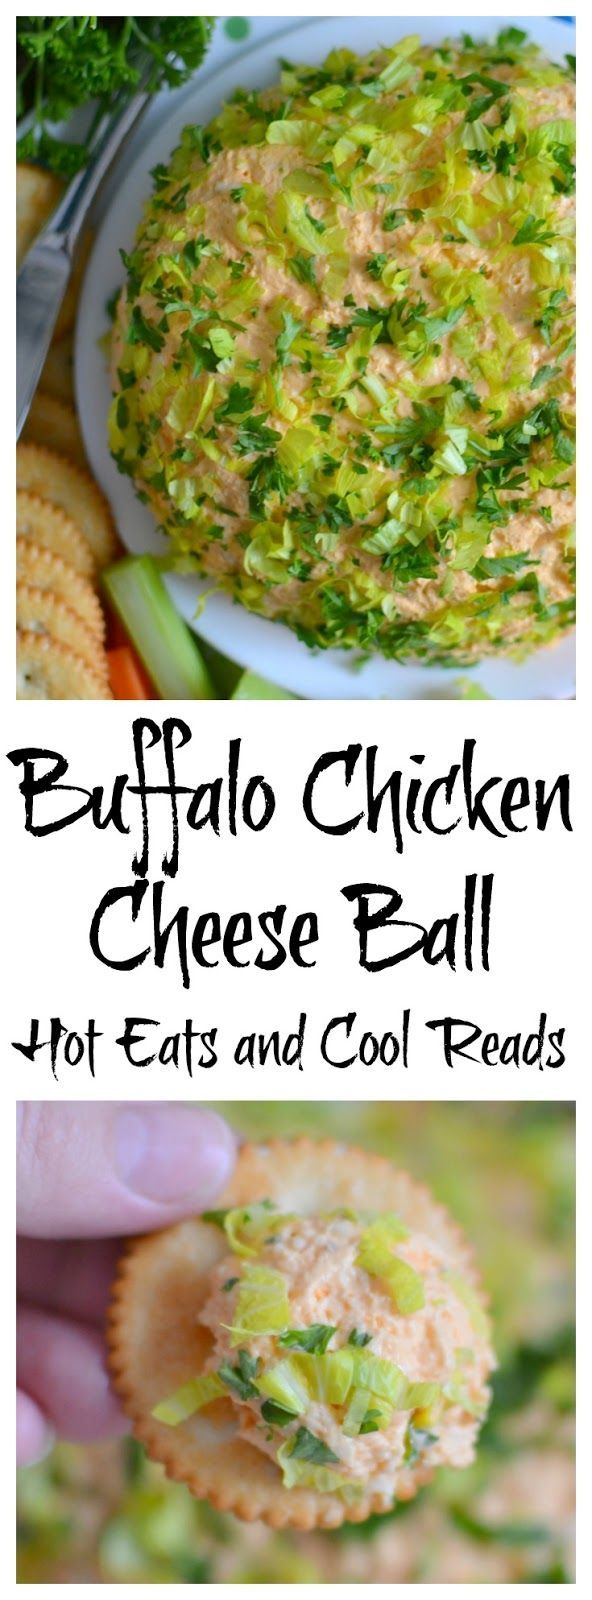 A tasty appetizer for New Year's or game day that's full of cheesy, garlic goodness! Turn the leftovers into a hot dip for an at home movie or date night! Buffalo Chicken Cheese Ball Recipe from Hot Eats and Cool Reads #HBPro @hamiltonbeach @amazon